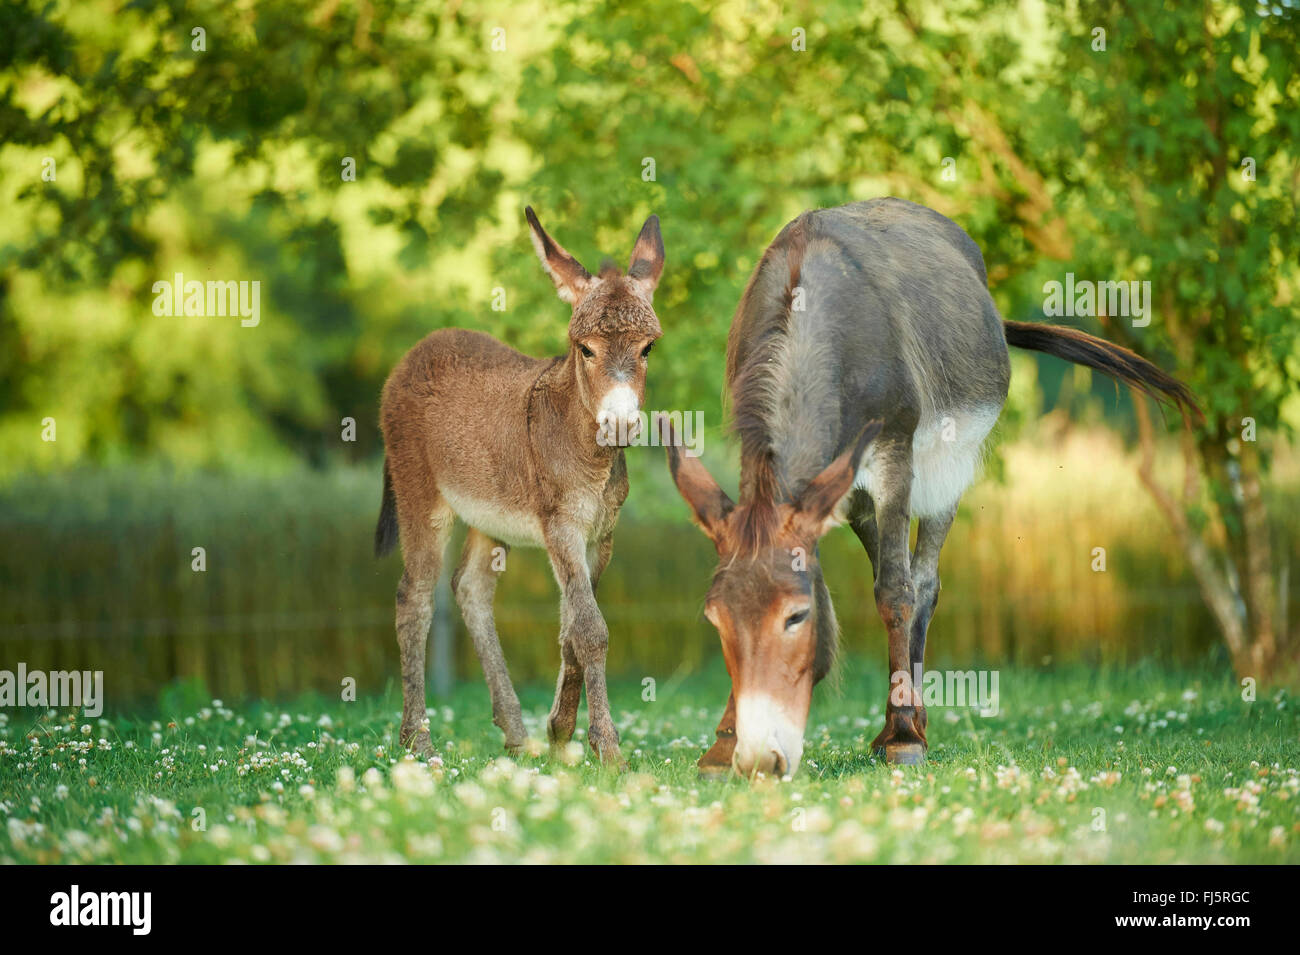 Domestic donkey (Equus asinus asinus), donkey mare with foal in a meadow, Germany - Stock Image